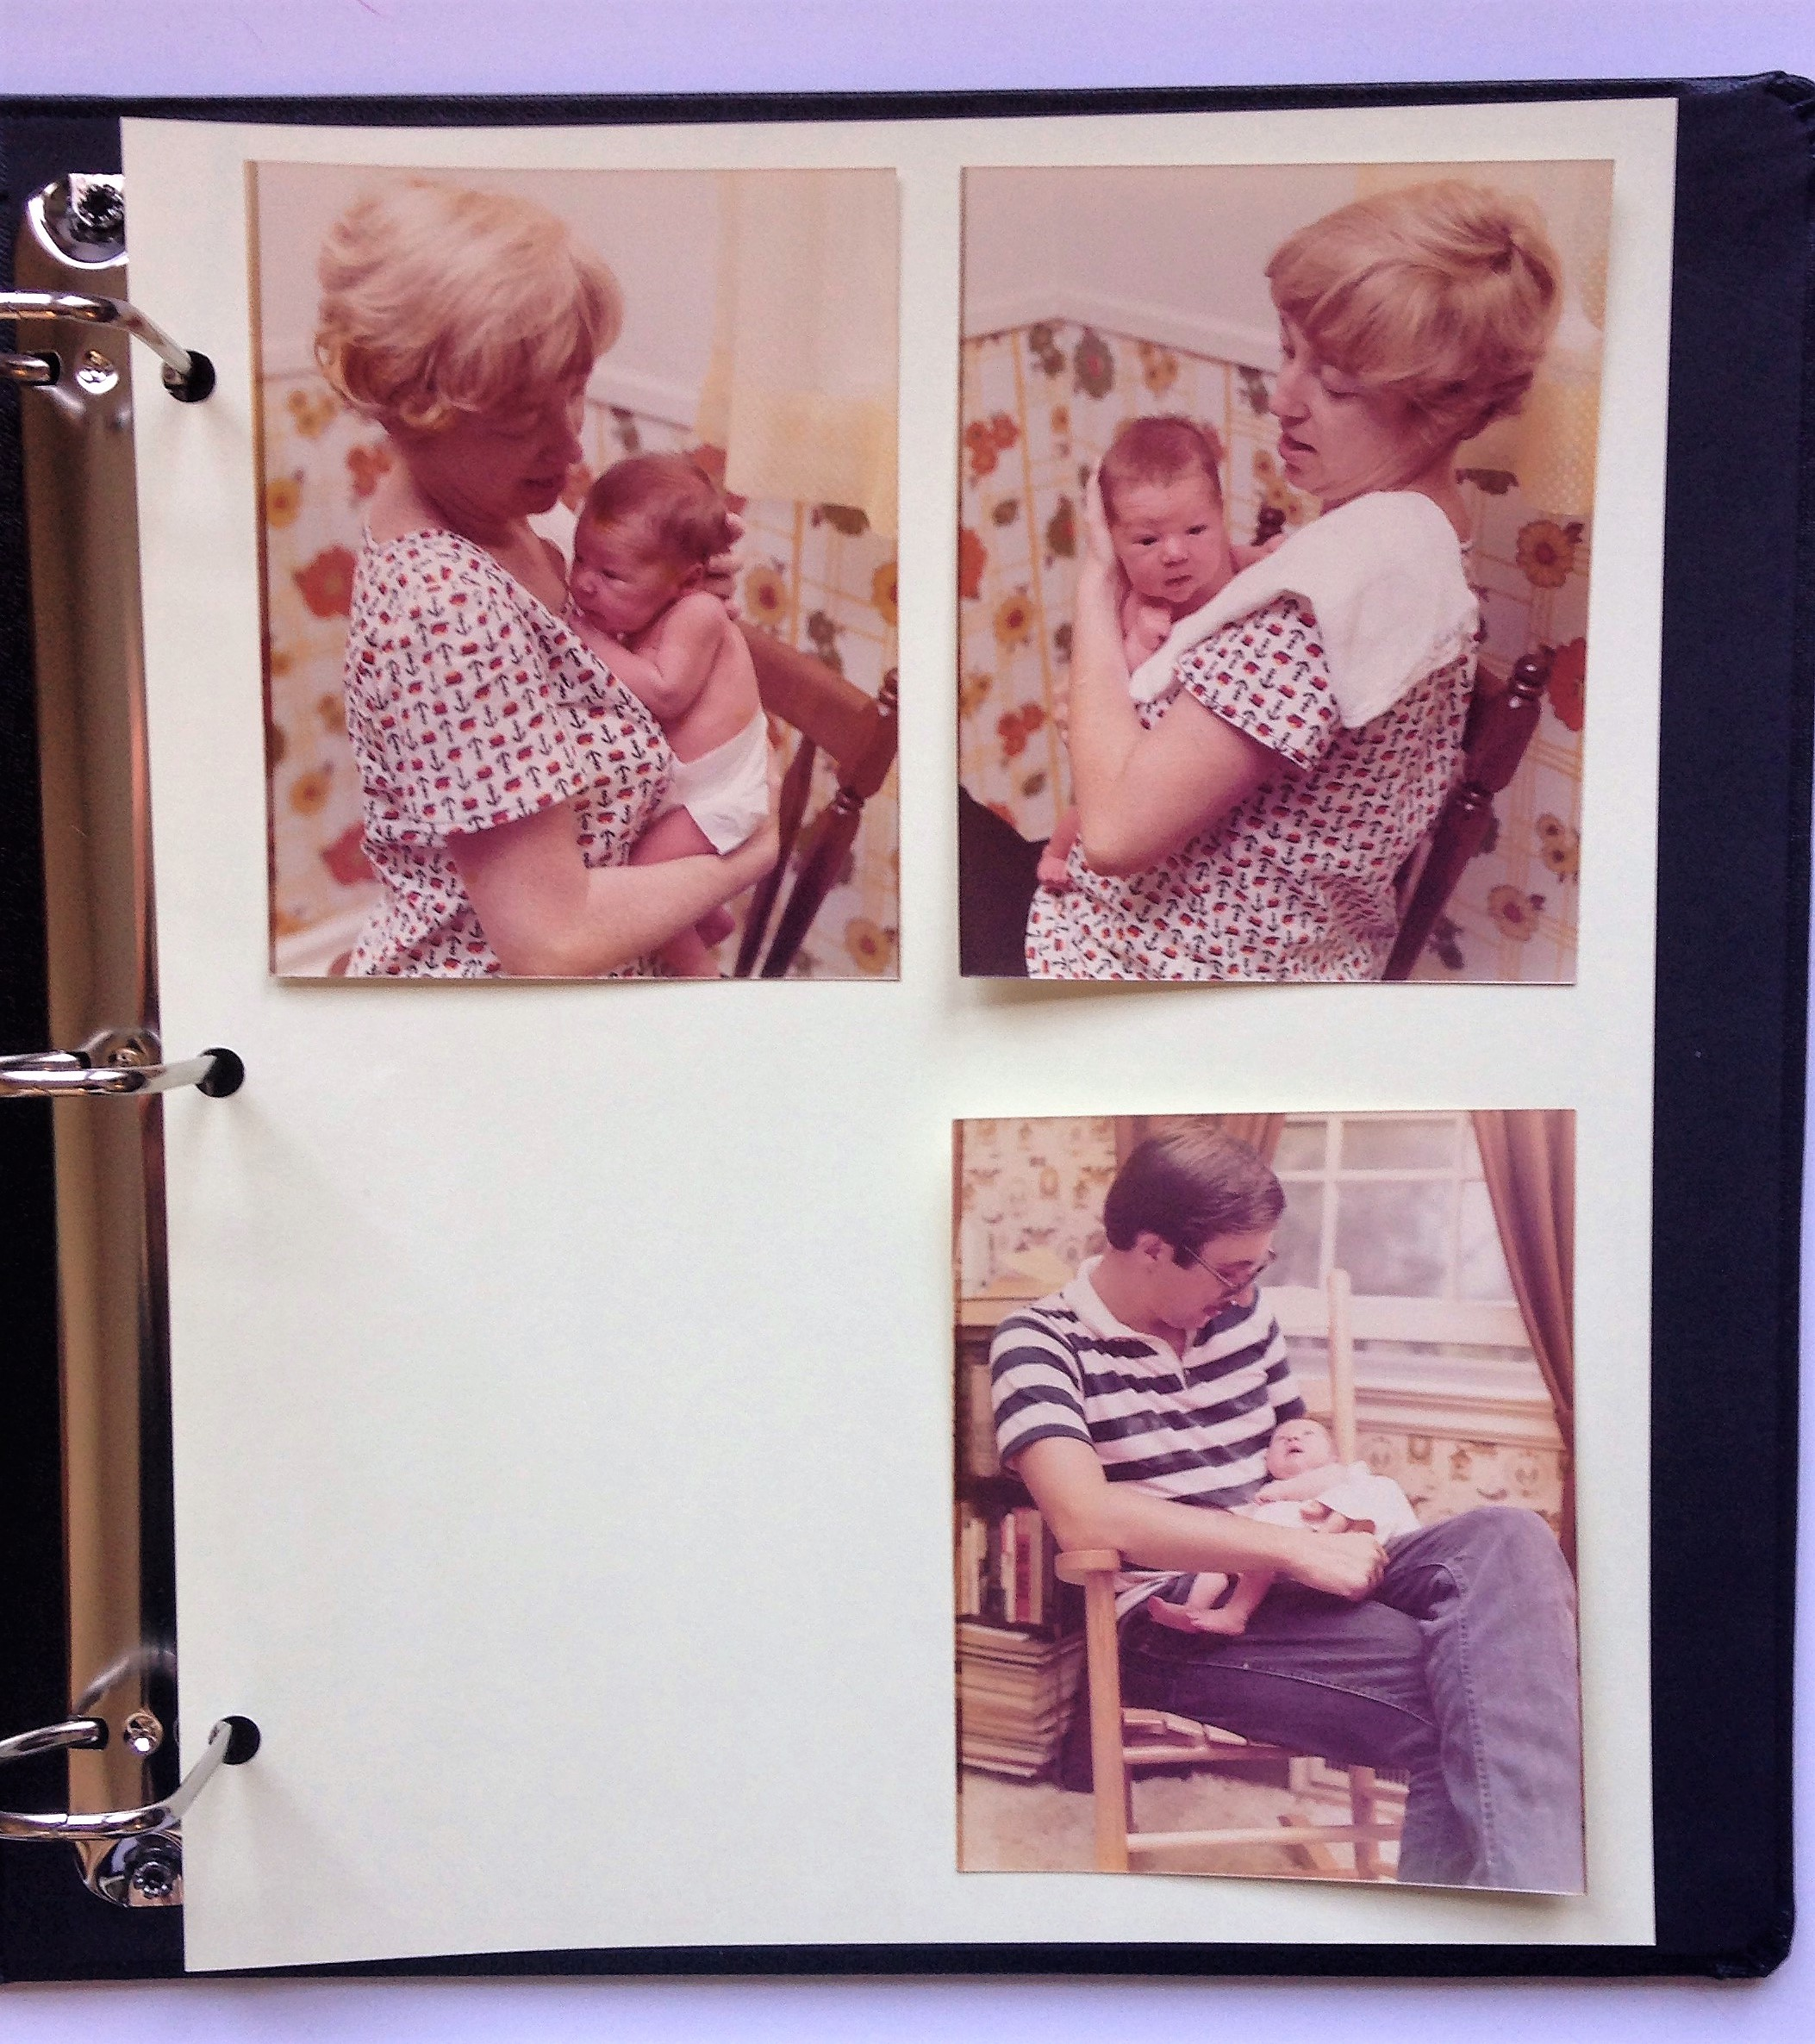 """An example of a page replicated in the new archival-quality album. Once I've decided on the positioning, I would secure the images to the page with mounting corners and write the caption, """"10 days old - August 28, 1977""""on the page."""